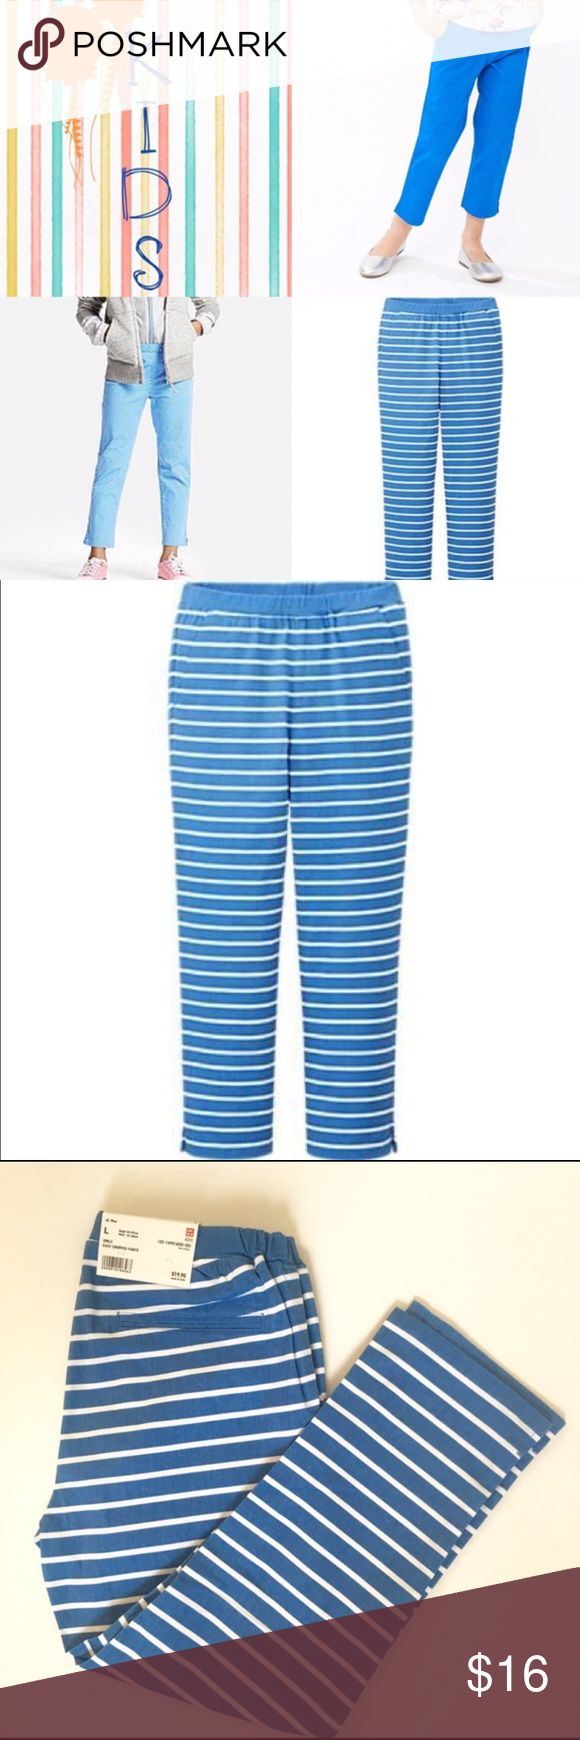 Girls Cropped Pants Girl Easy Pull up Cropped Trousers. Brand new with tags. They are stretchy so they are great for play! Front pockets and one back pocket on the left side. Stretchy waist band for easy on and off. I have various sizes please take a look at the size chart. I have dark blue ones as well in different sizes. Uniqlo Bottoms